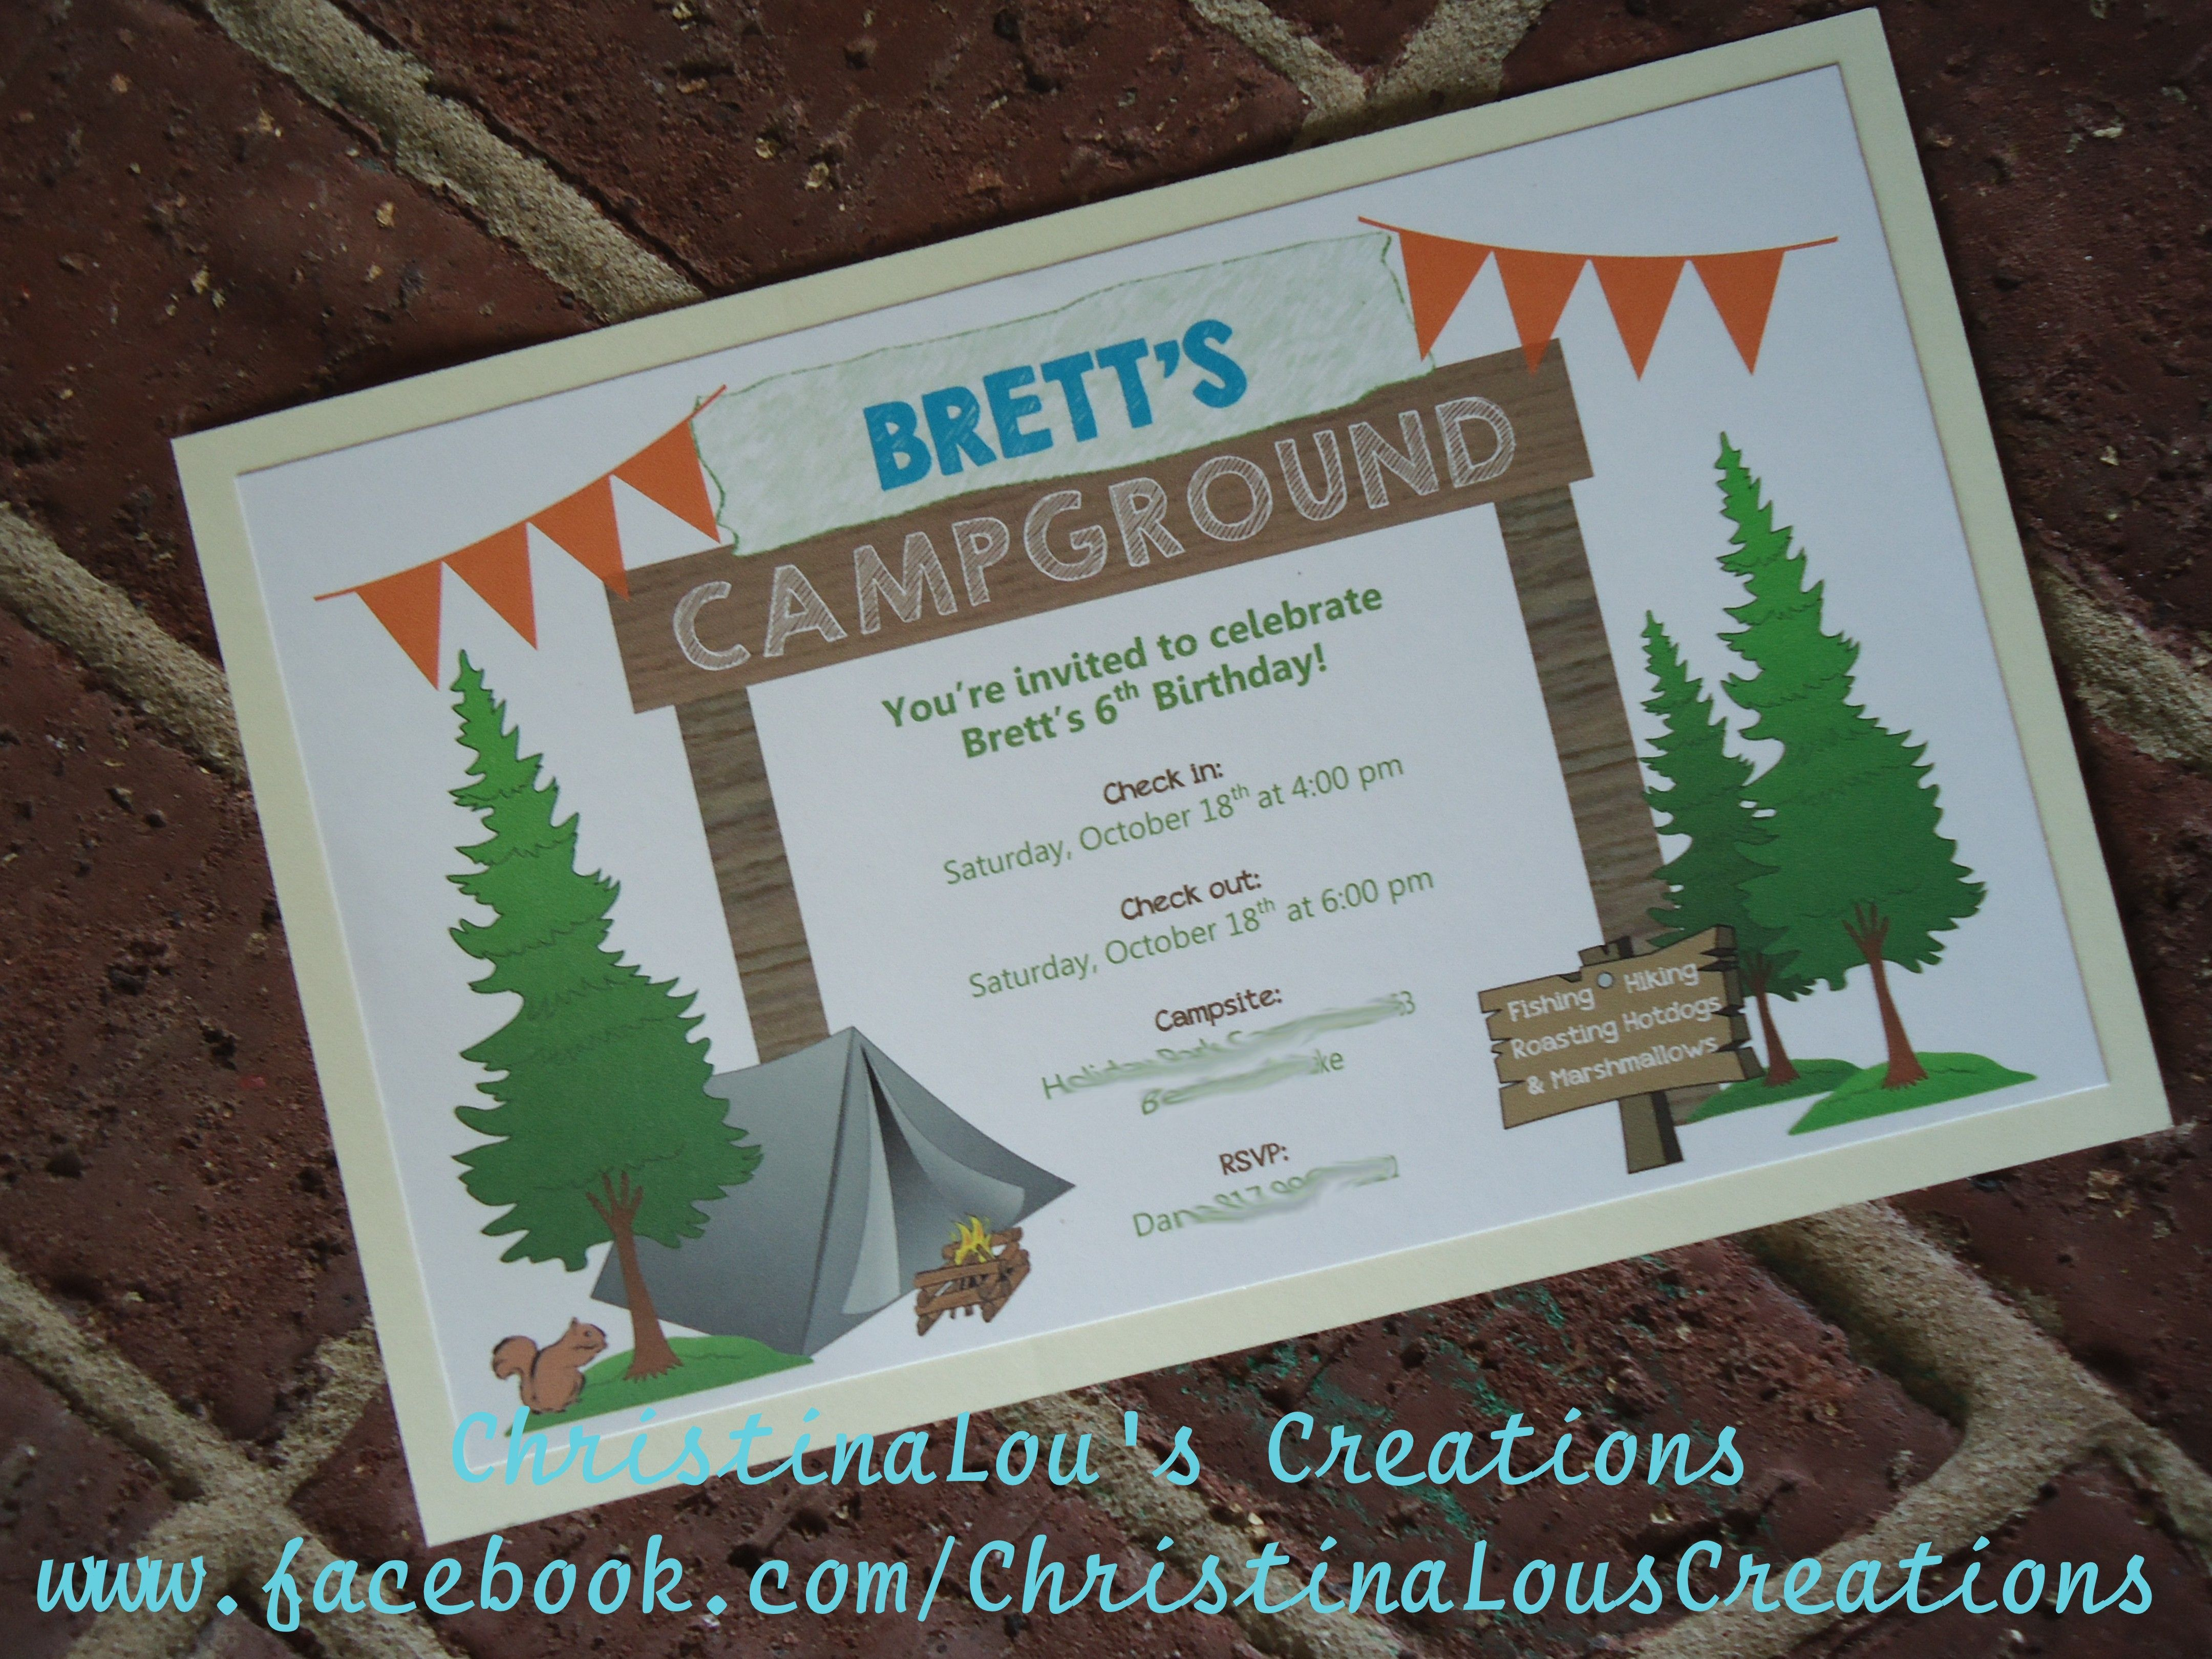 Camping Inspired Party Invitation w/ Envelopes | Camping Inspired ...